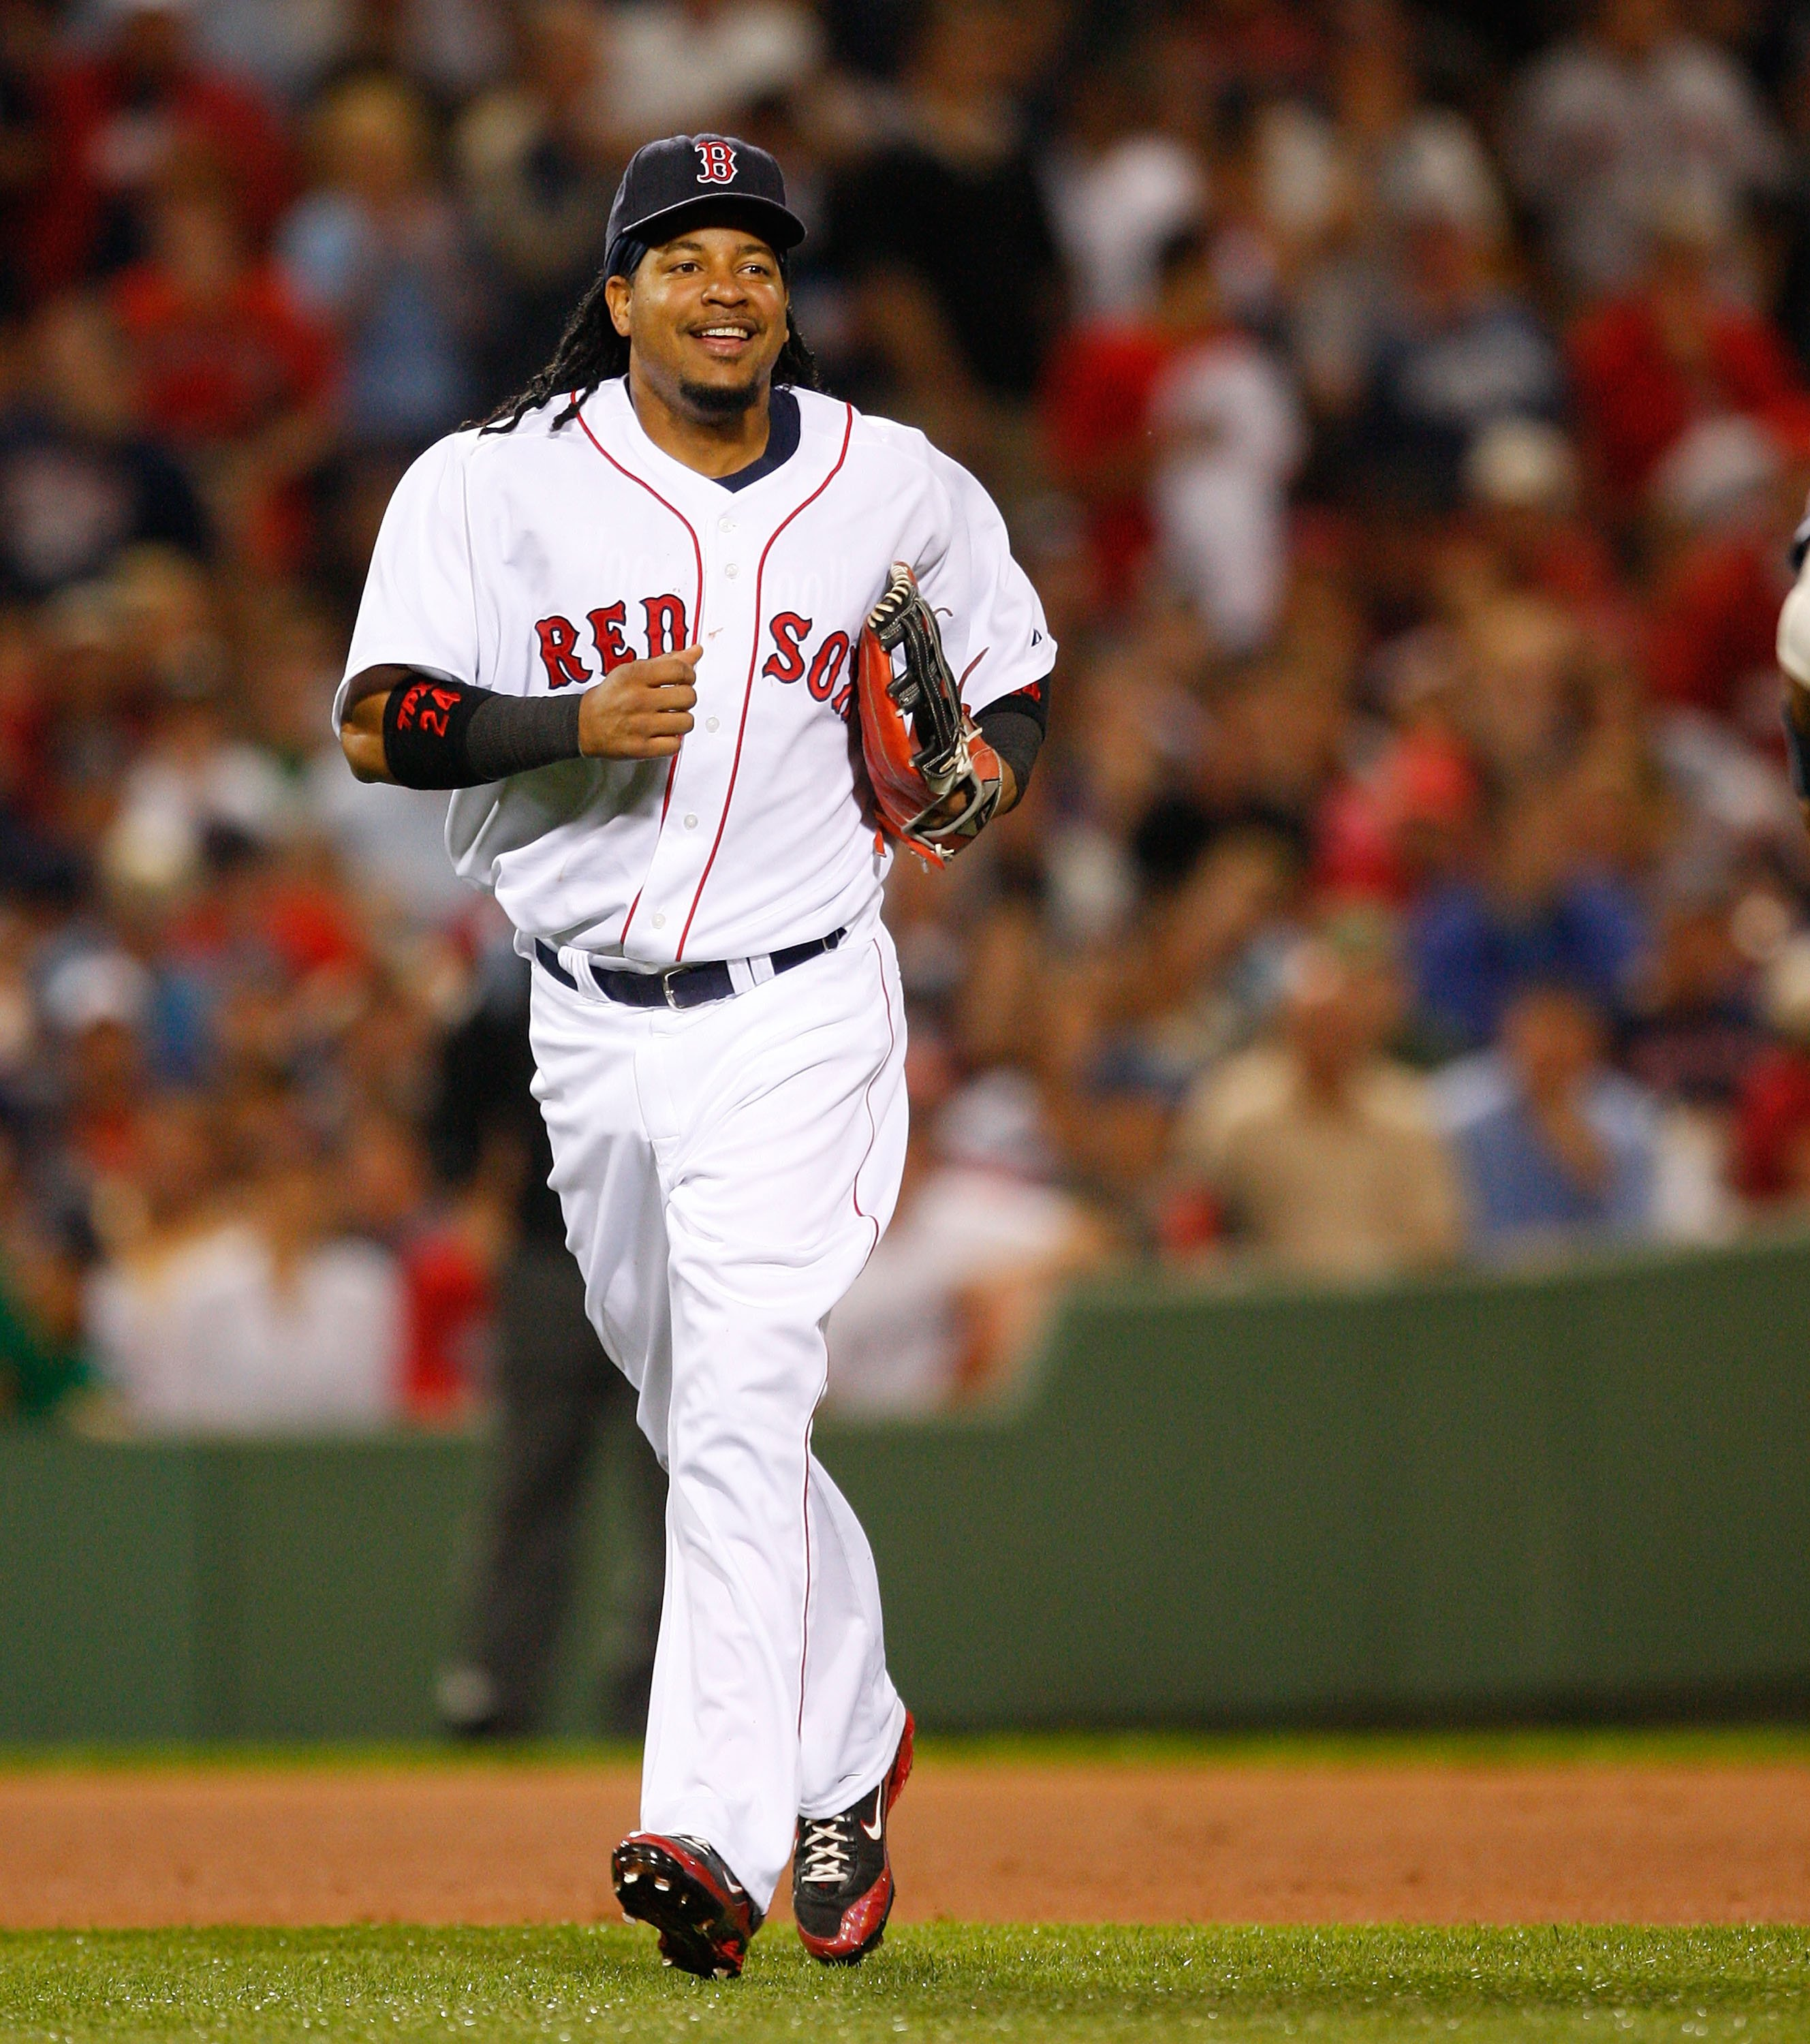 Manny Ramirez #24 of the Boston Red Sox smiles after making a catch off of Alex Rodriguez of the New York Yankees at Fenway Park on July 27, 2008 in Boston, Massachusetts. | Photo: GettyImages